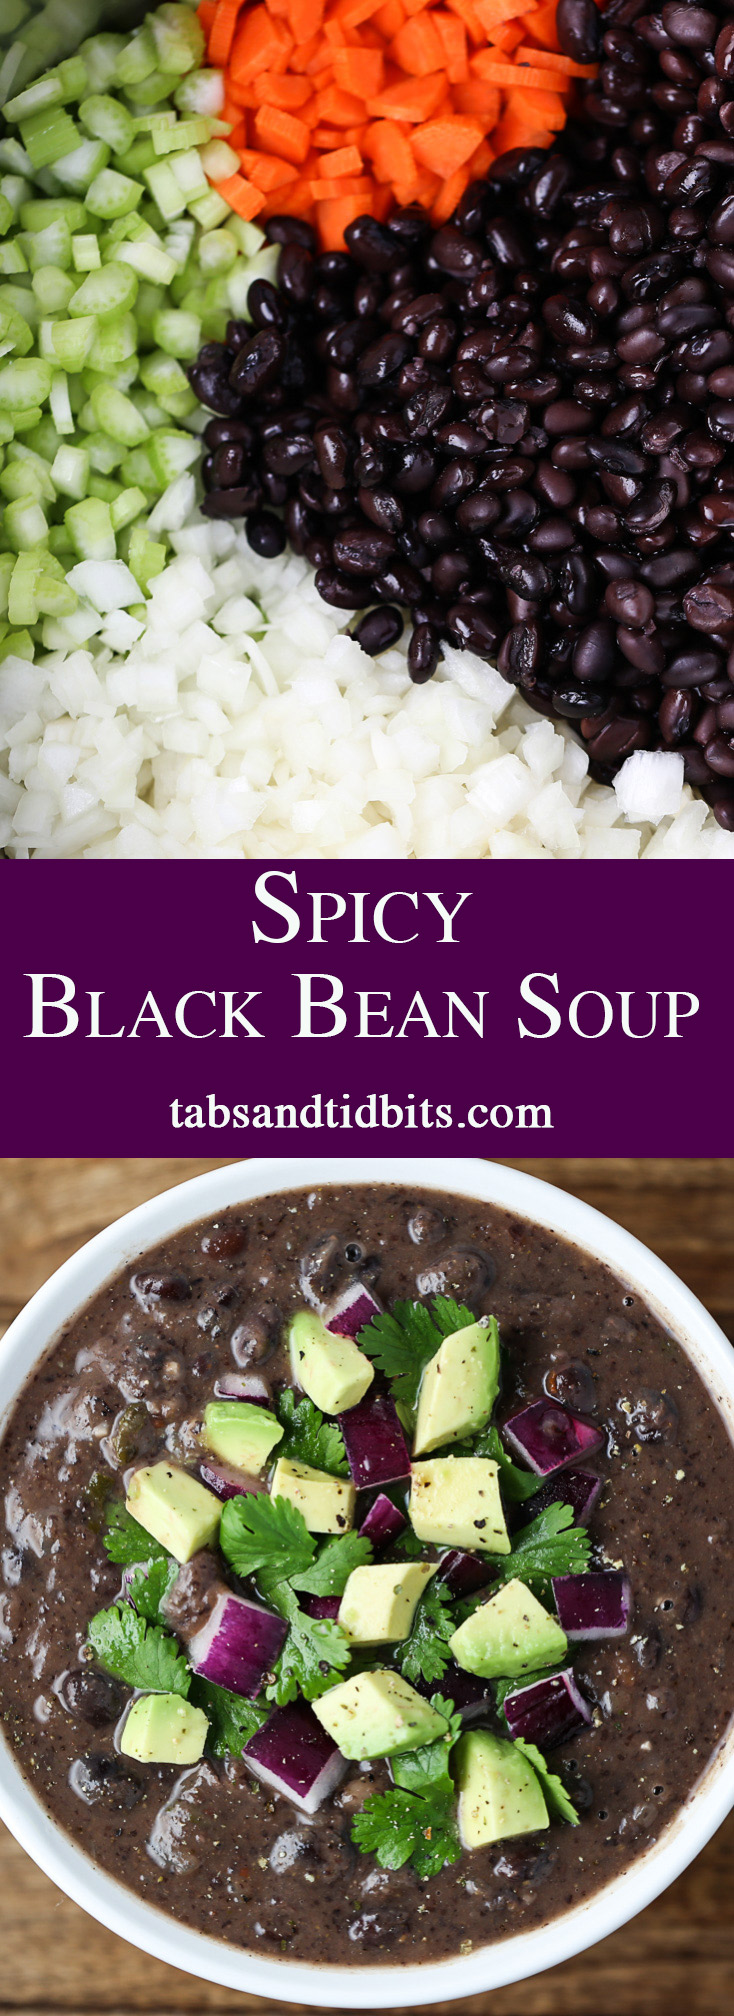 Spicy Black Bean Soup - Spicy & flavorful black bean soup that uses canned black beans, fresh vegetables along with the perfect spices to complete this soup!